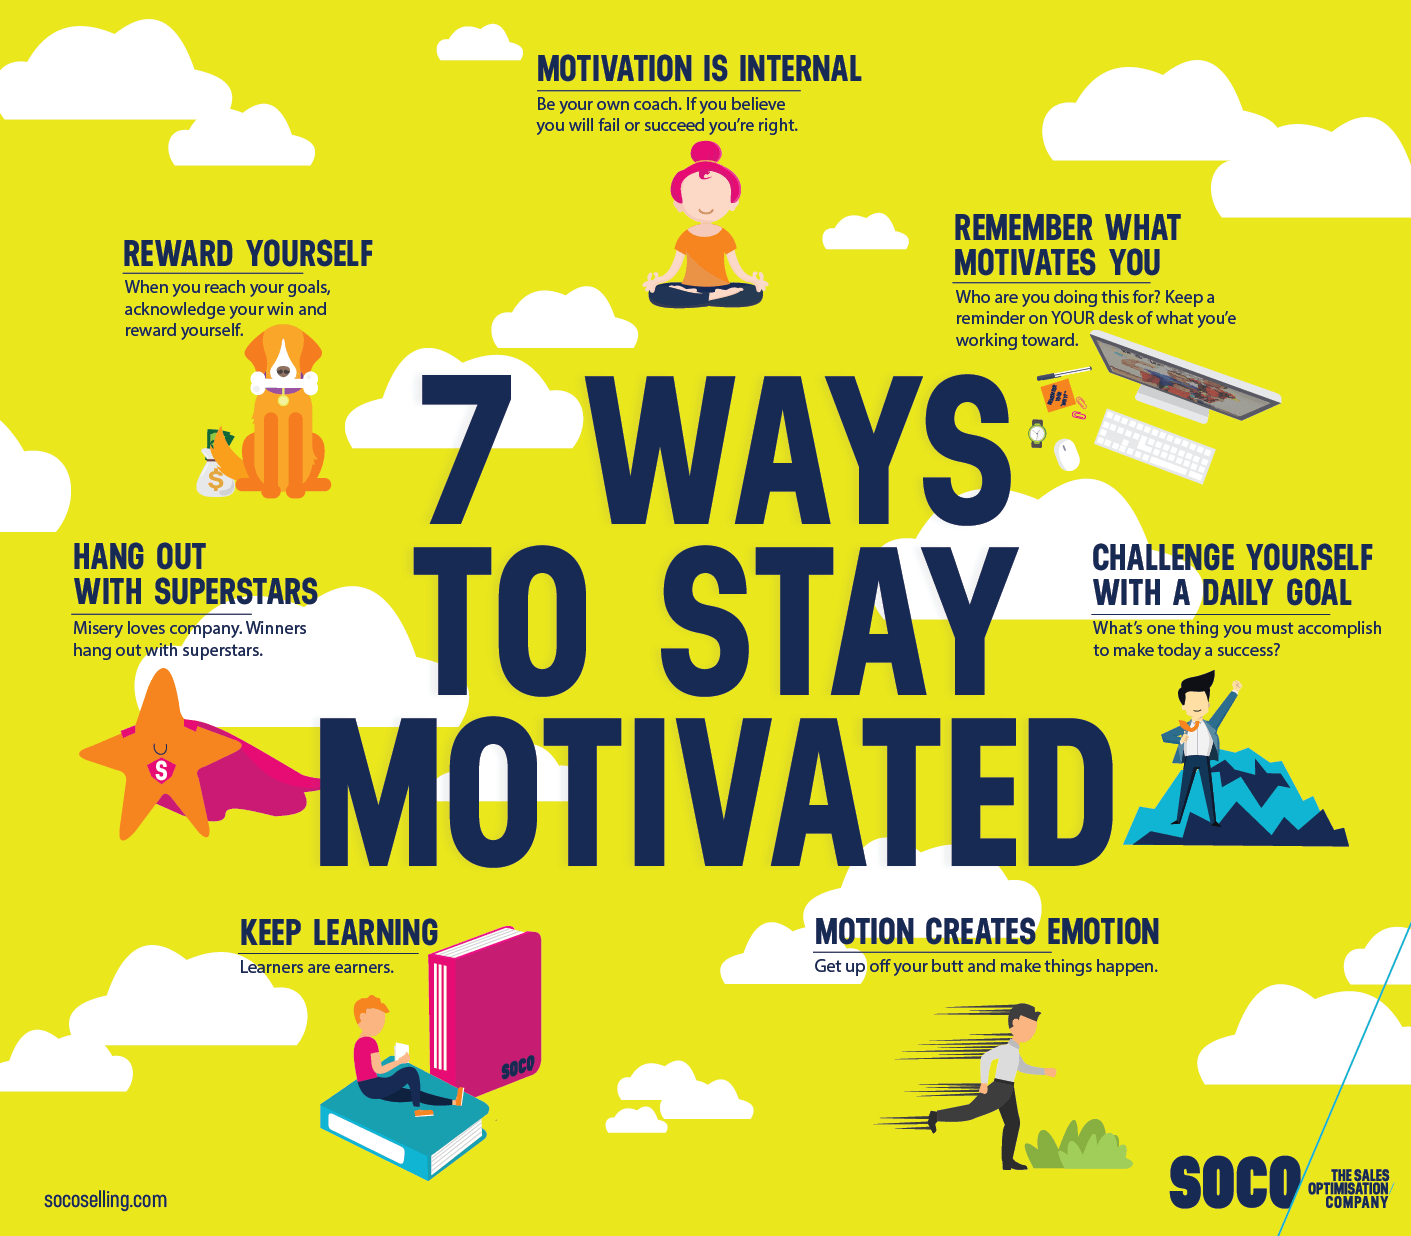 [image] 7 ways to stay motivated